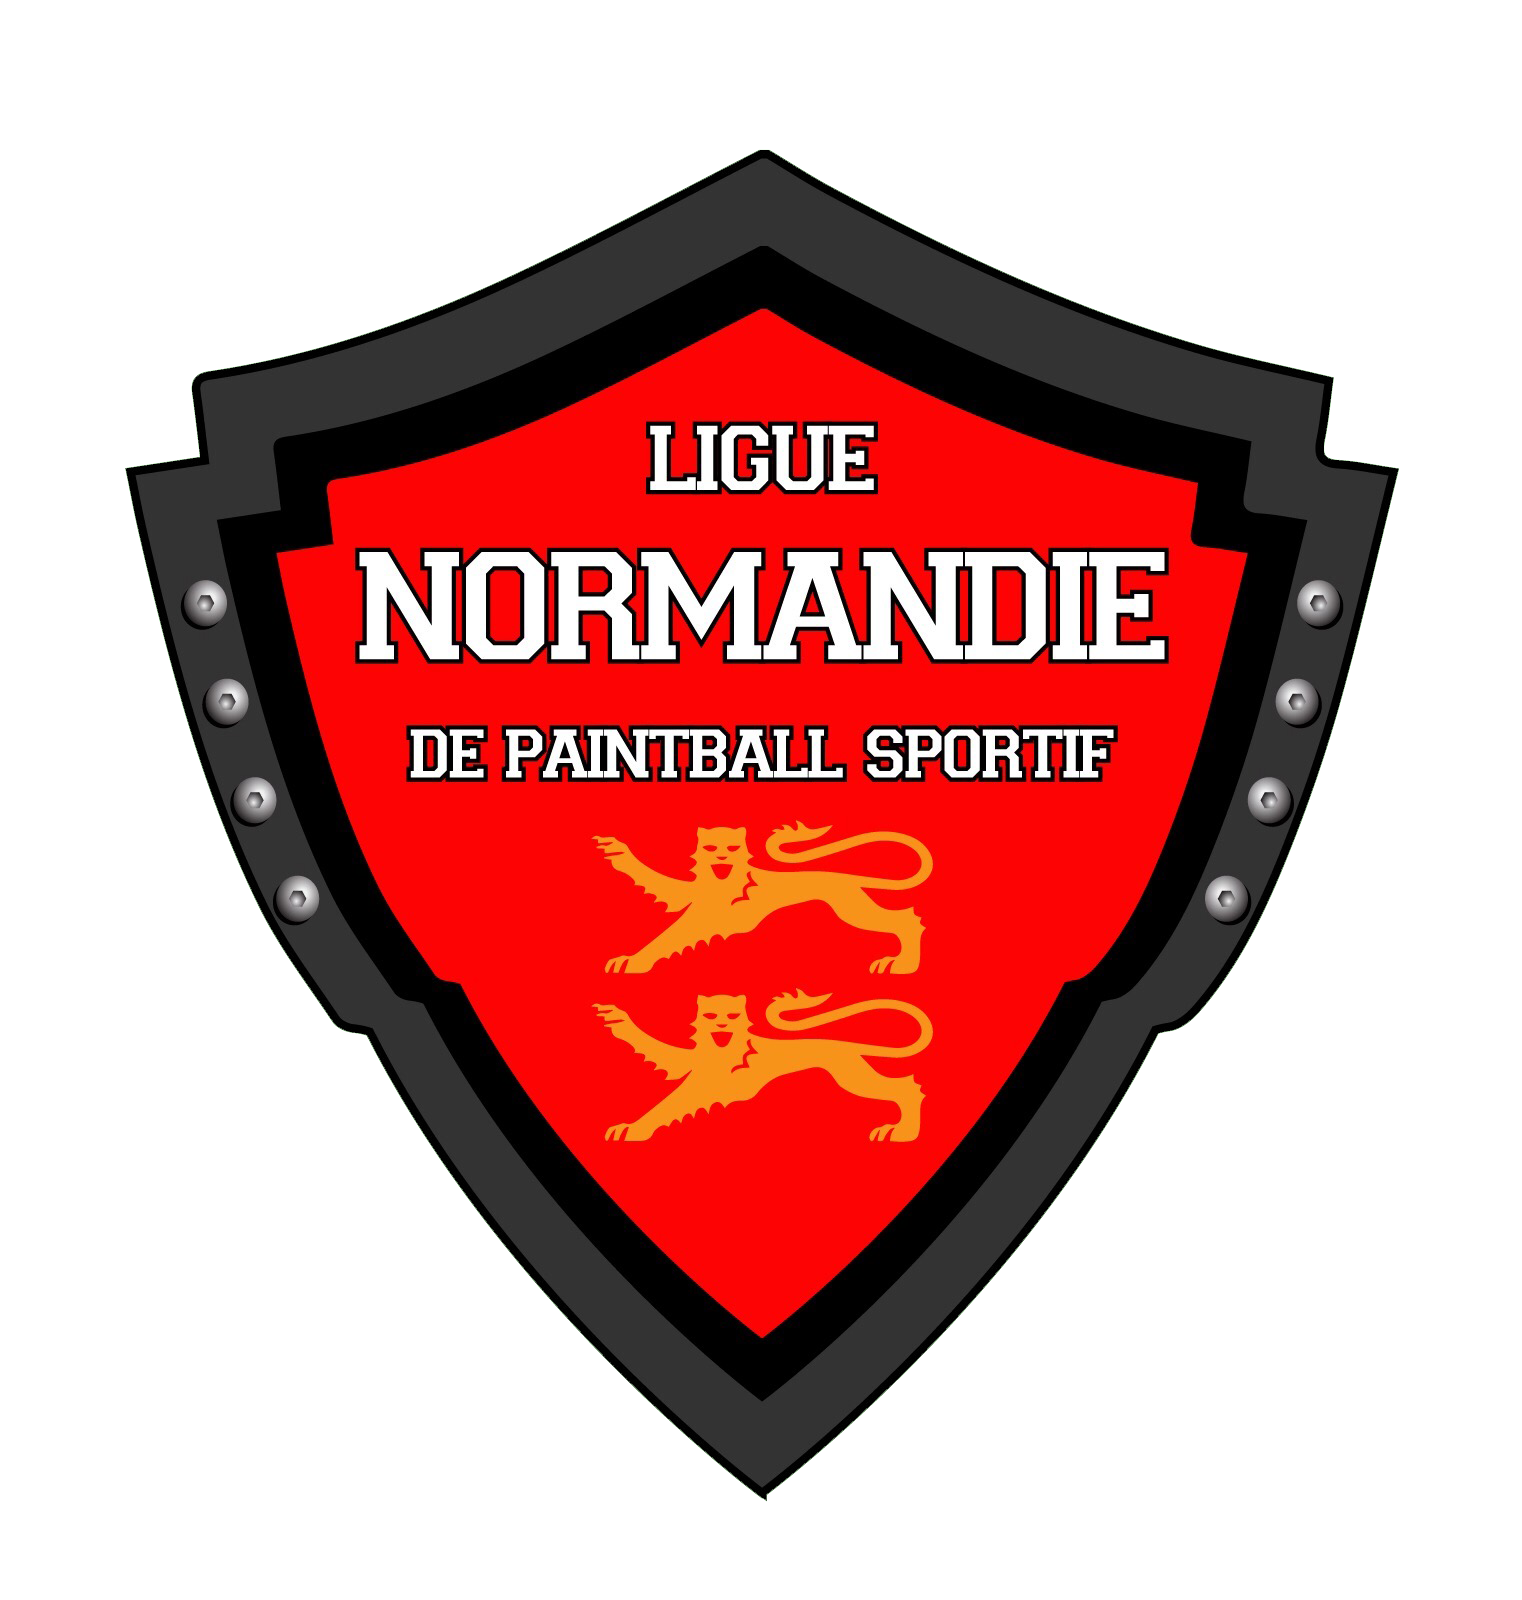 Ligue Normandie de Paintball Sportif